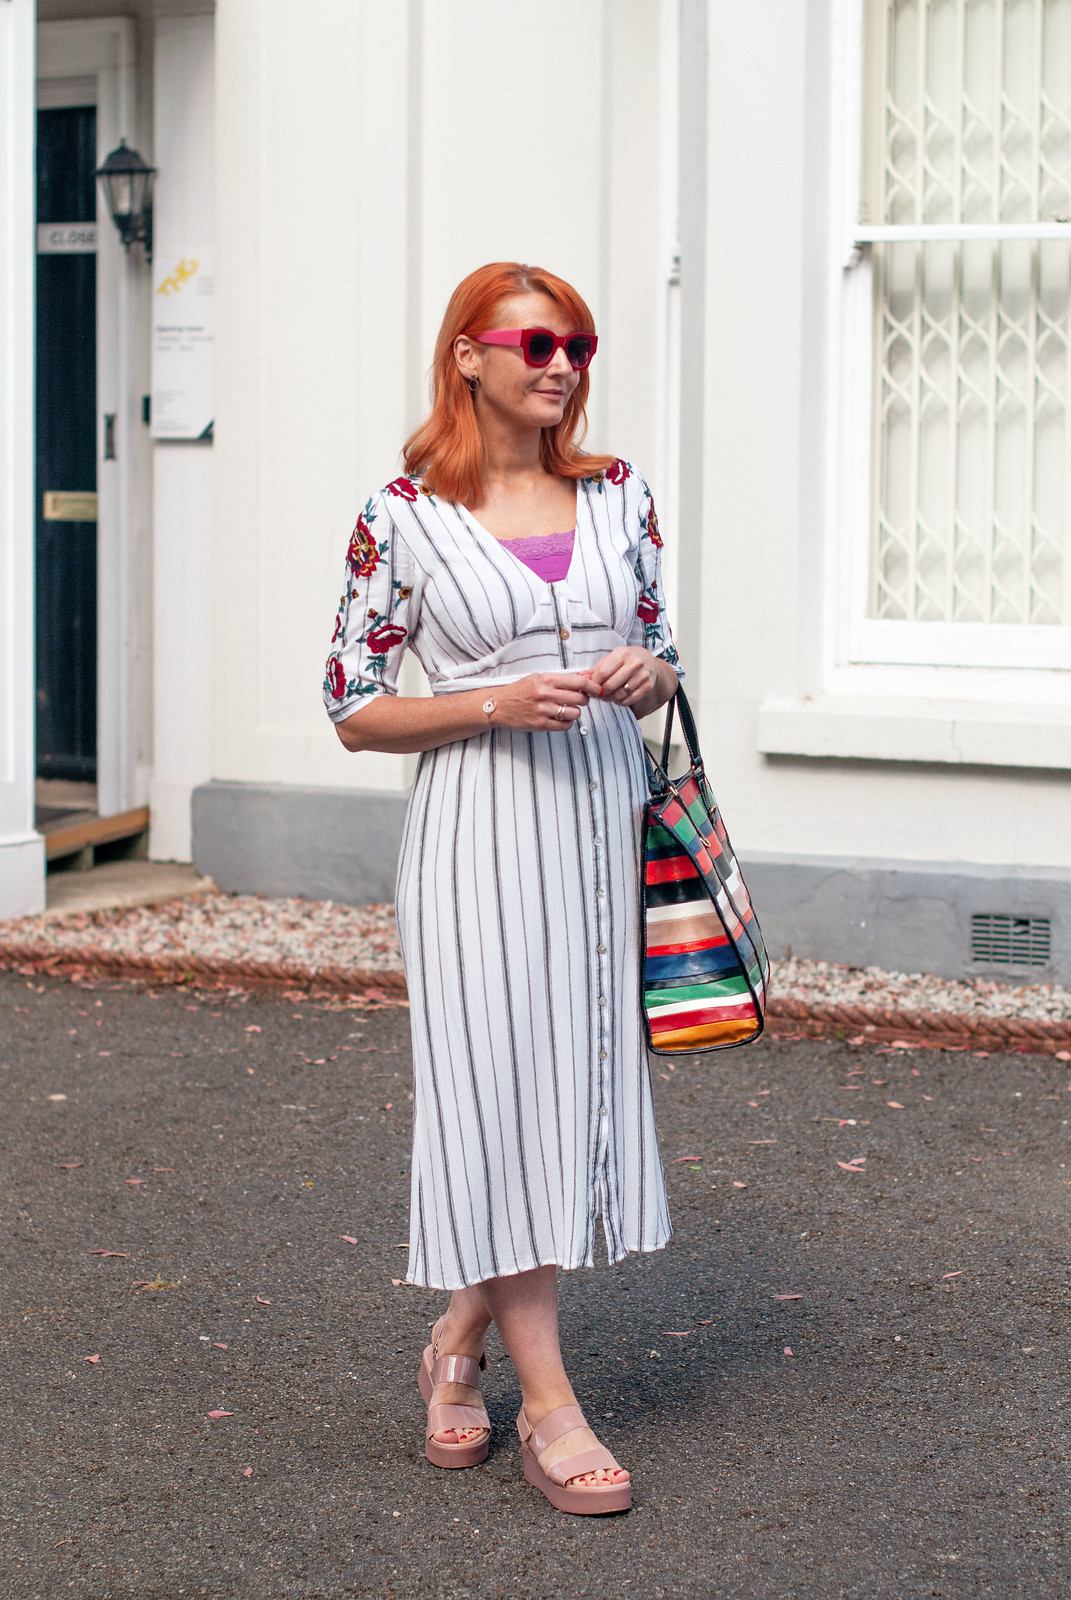 A White Summer Dress That Got All The Compliments - Embroidered Striped White Dress, Blush Pink Flatform Sandals, Striped Leather Tote | Not Dressed As Lamb, Over 40 Fashion